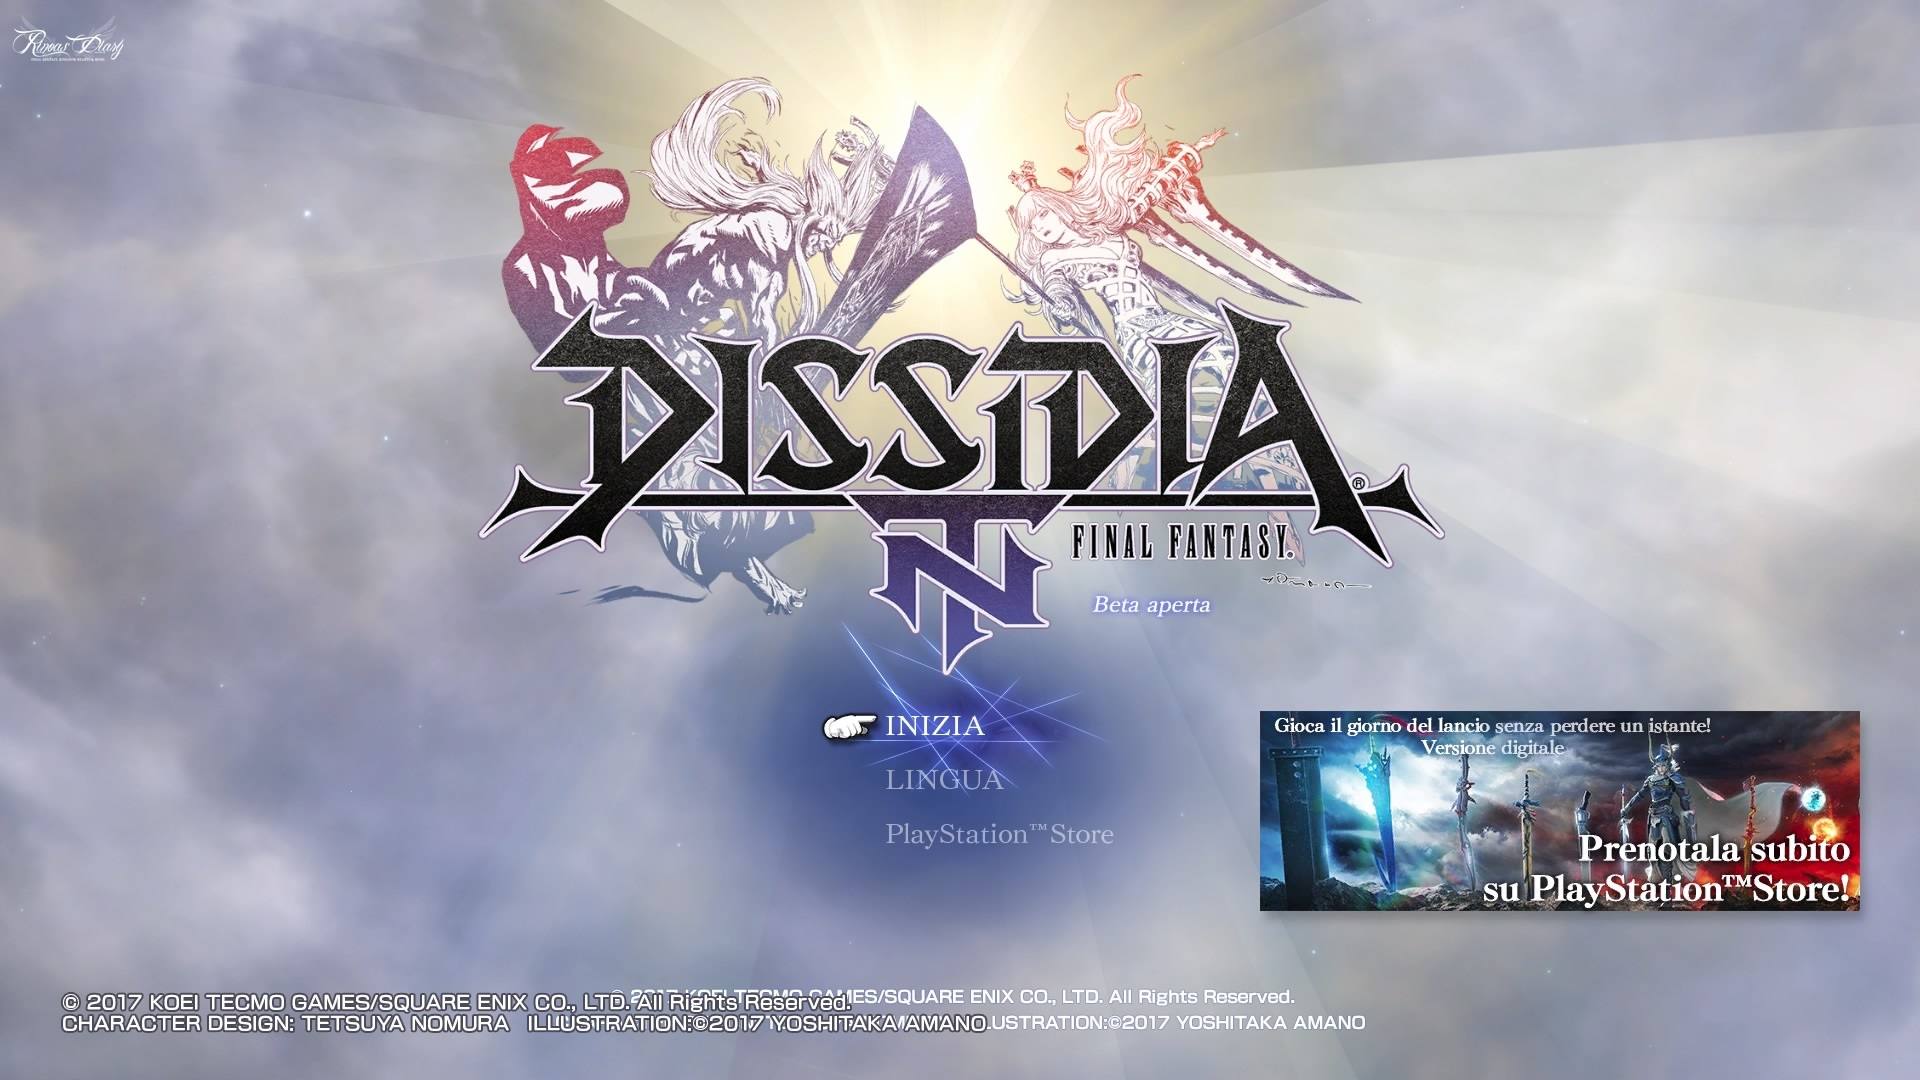 Le tre sessioni della Open Beta di Dissidia Final Fantasy NT!